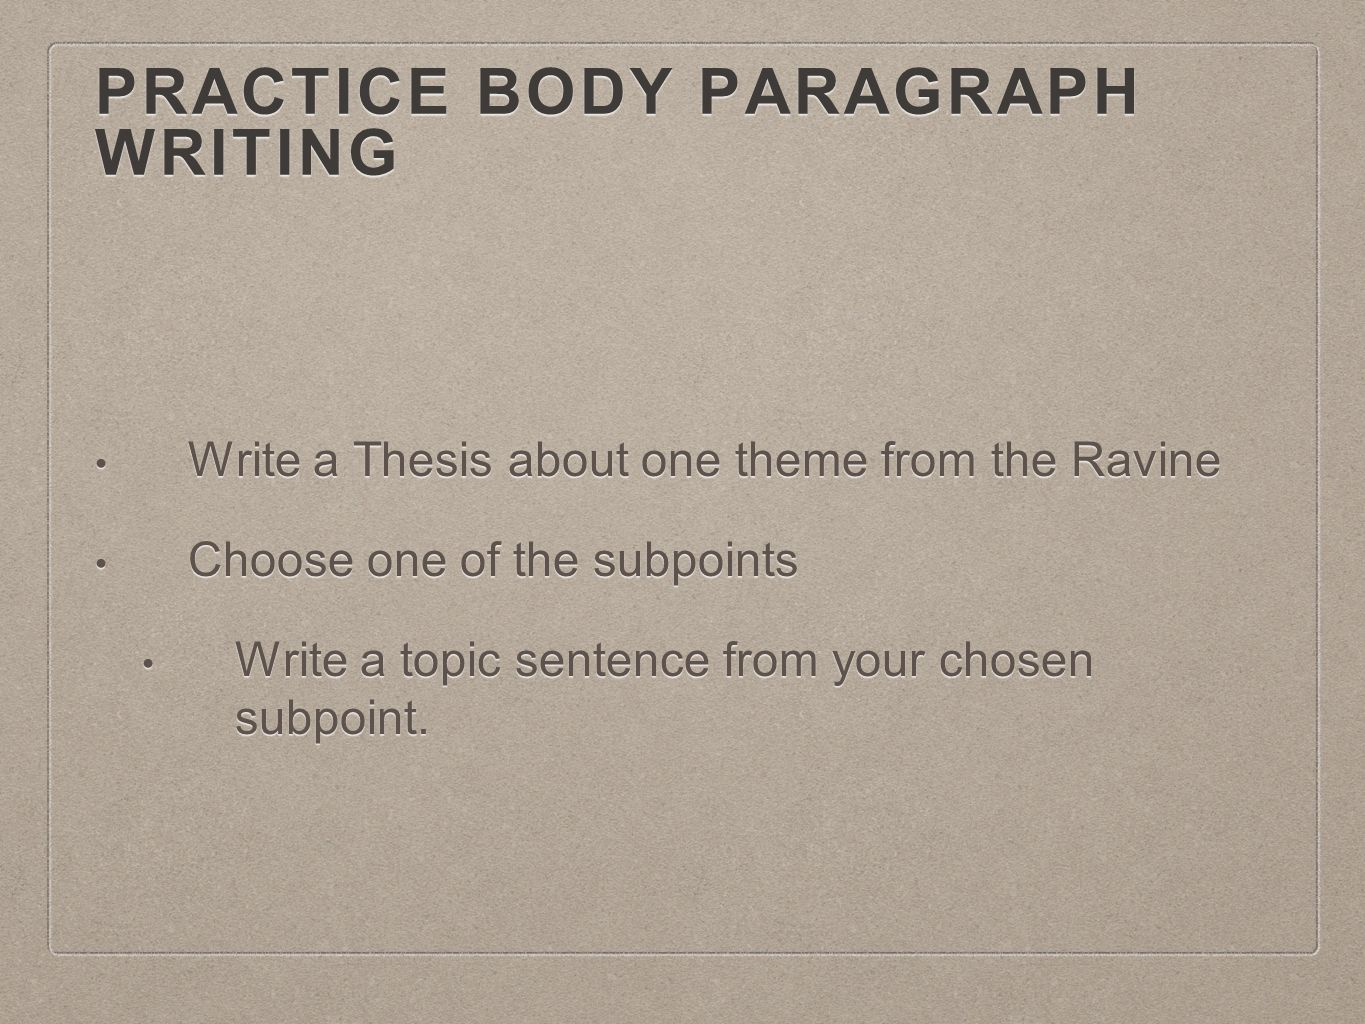 practice writing a thesis sentence The online writing lab (owl) at purdue university houses writing resources and instructional material,  sentence fragments, sentence structure,.